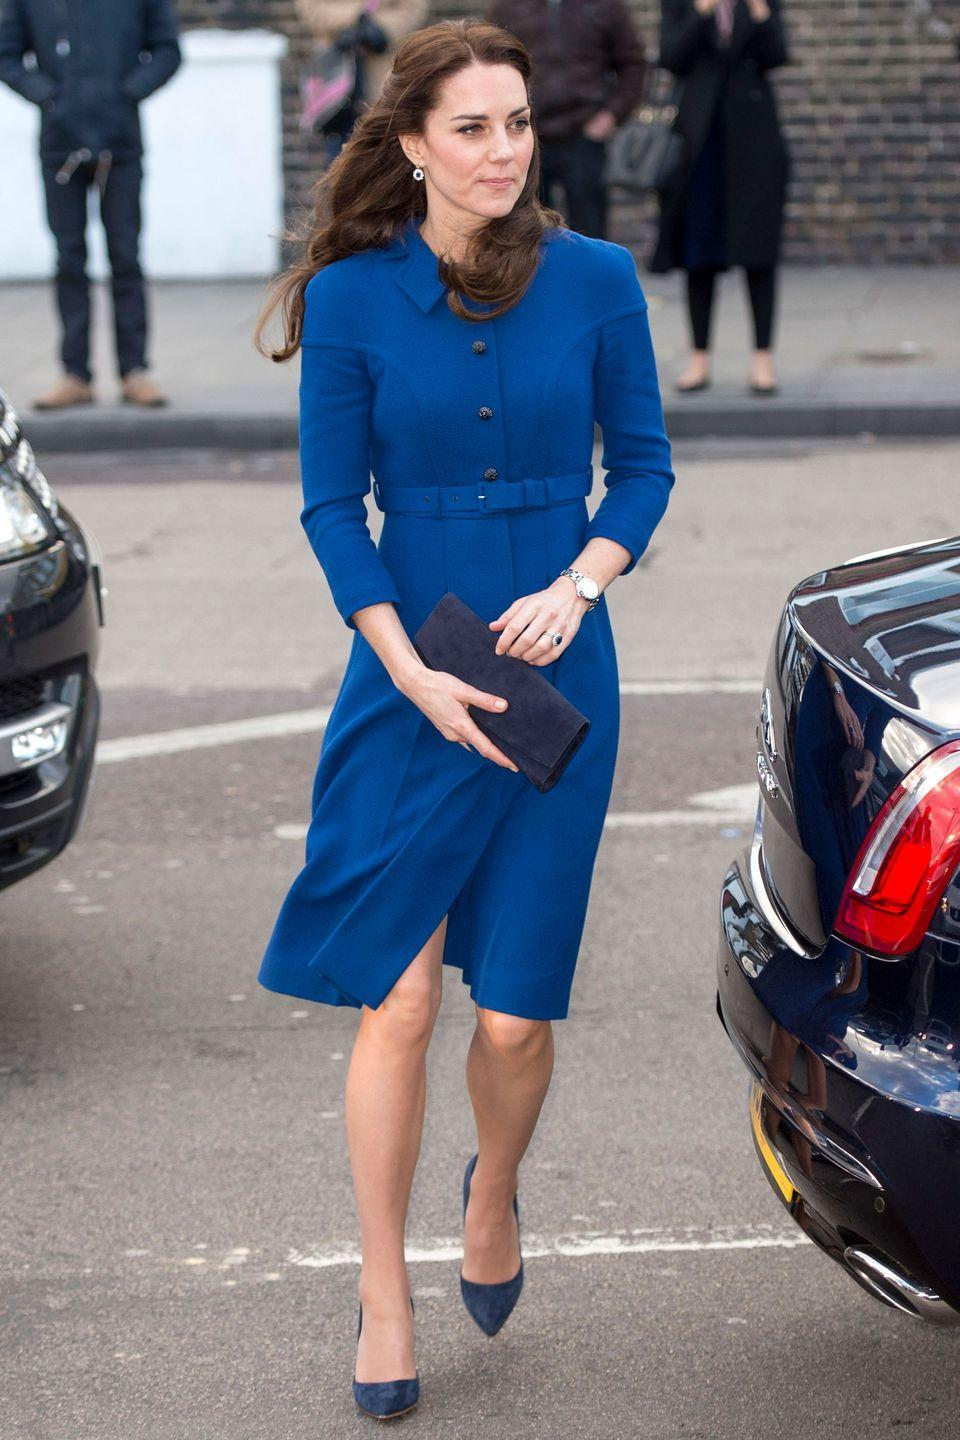 <p>Middleton wears a blue belted coatdress by Eponine, suede navy heels, suede clutch and pendant earrings while visiting the<br><br><br><br><br><br><br><br><br><br><br><br><br><br><br><br><br><br><br><br><br><br><br>Anna Freud Centre's Early Years Parenting Unit in Holloway, north London.<br></p>